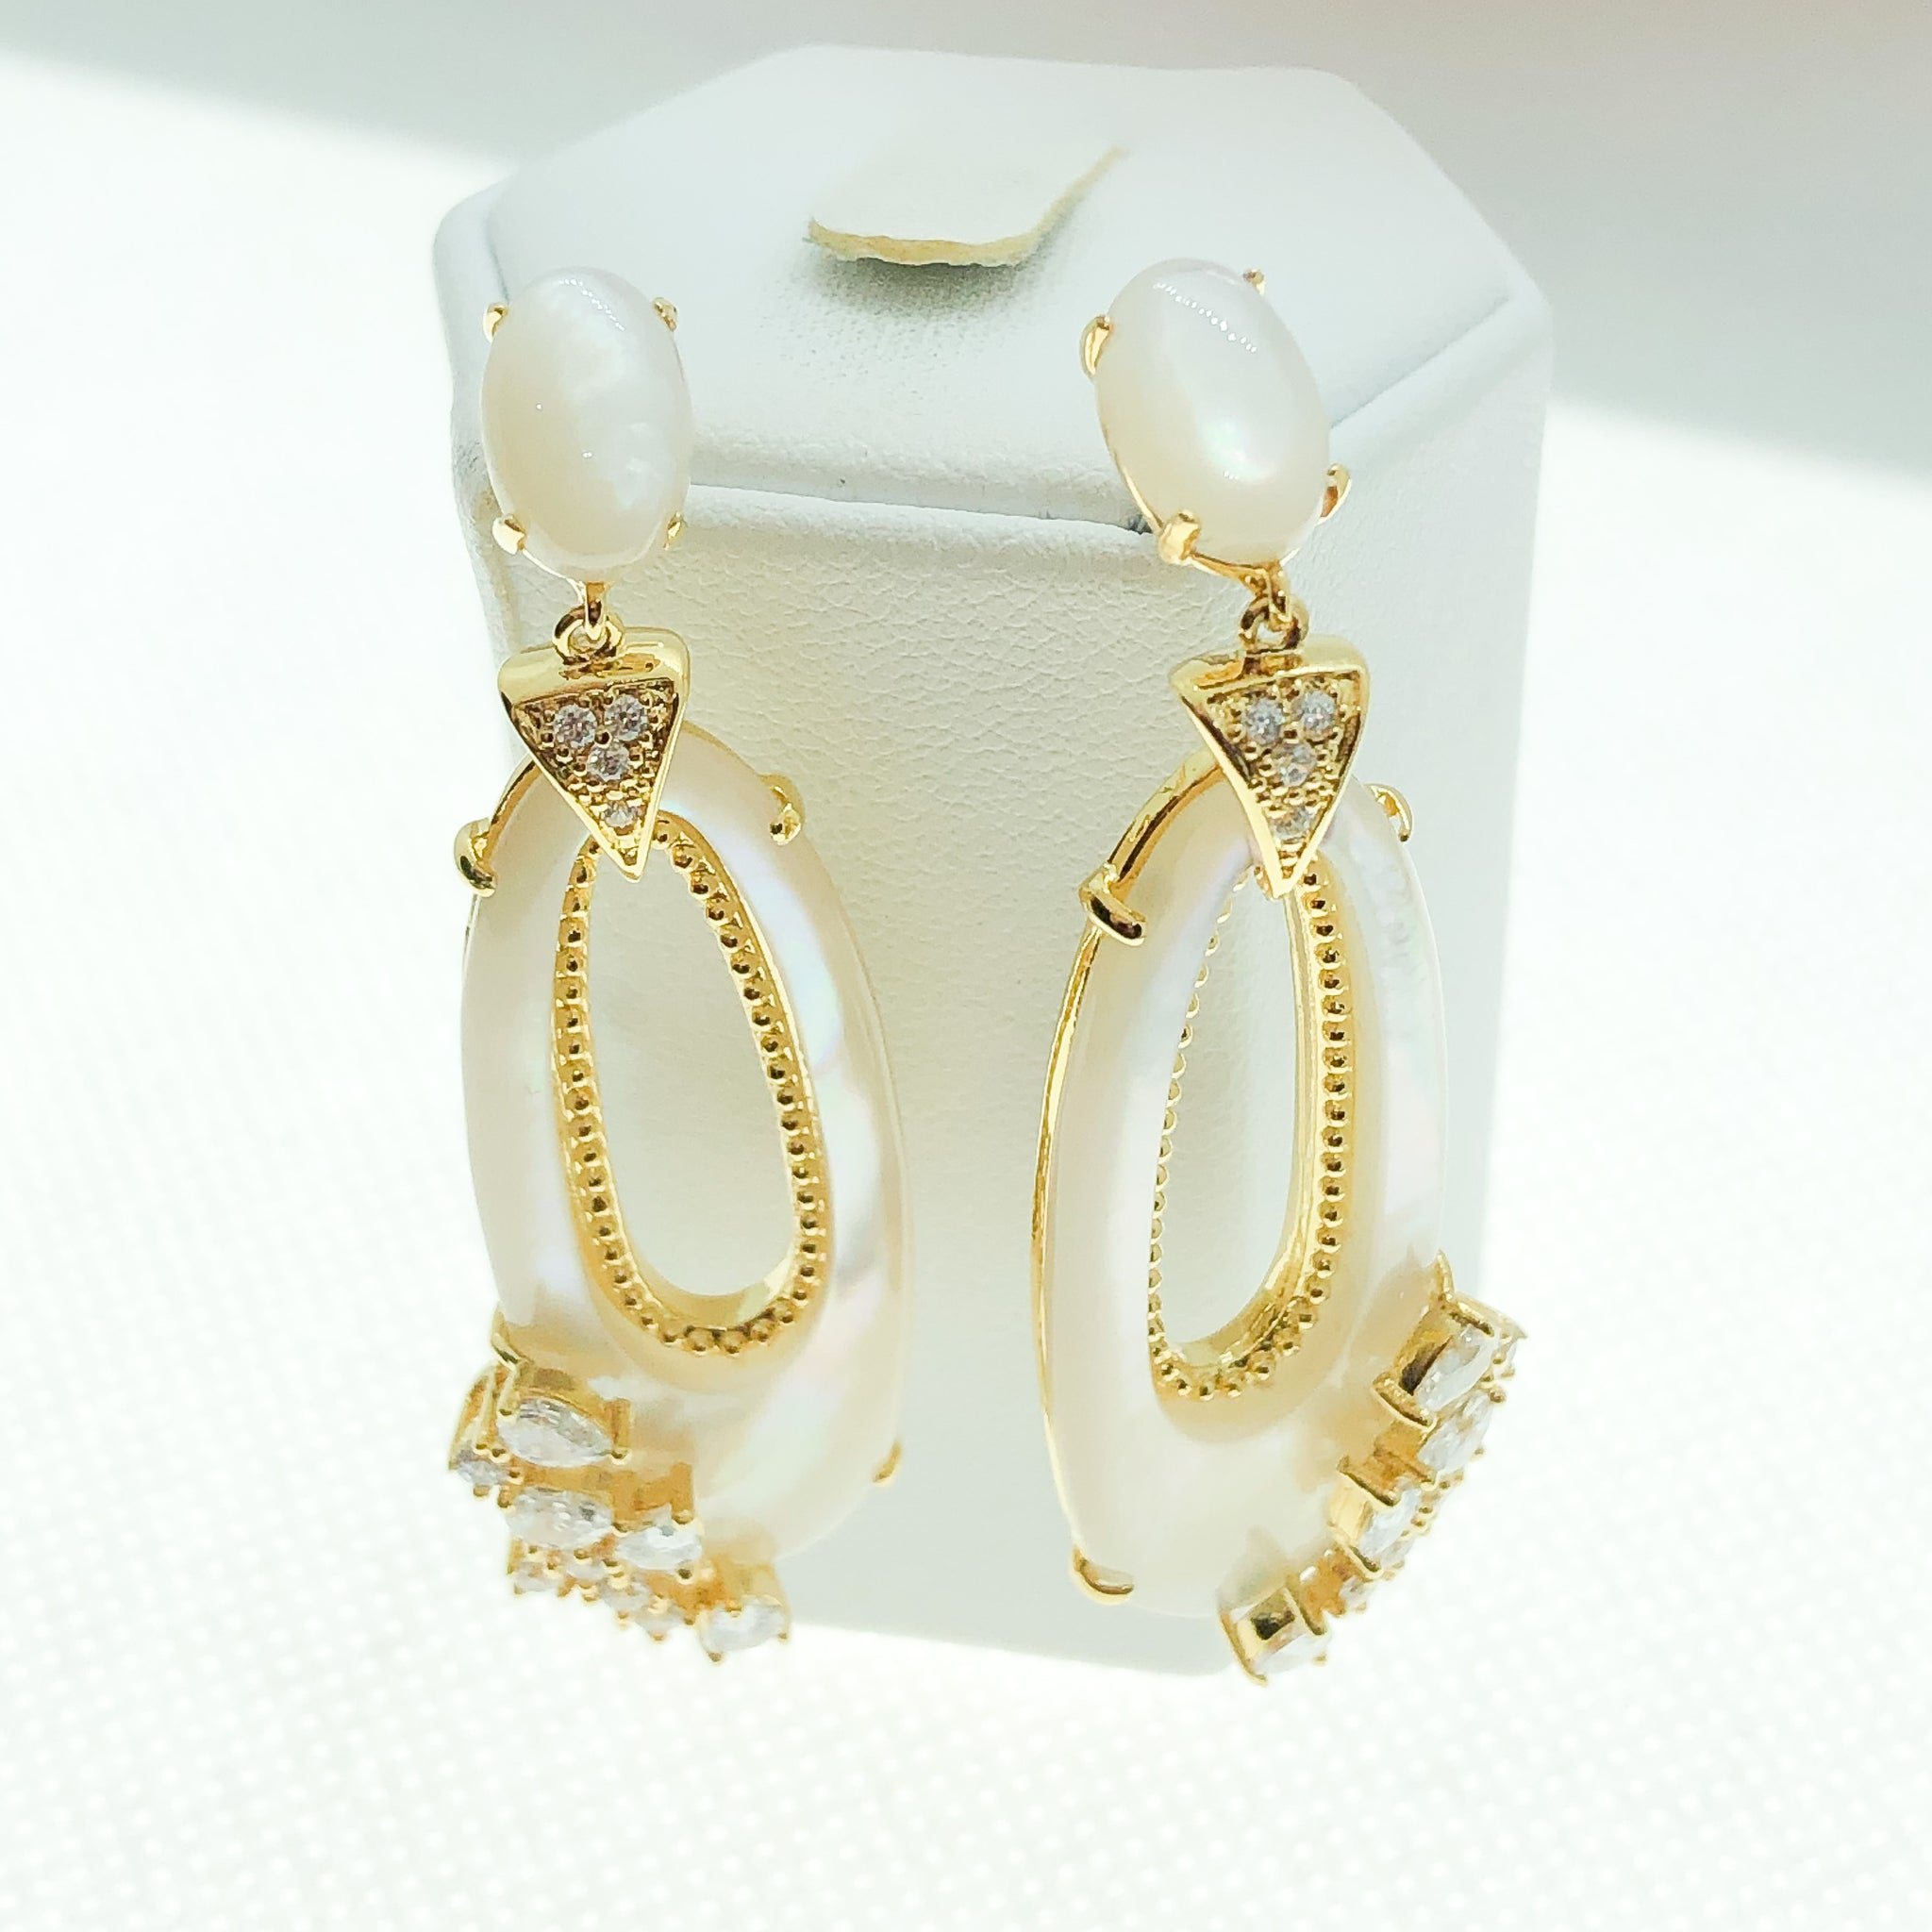 ID: E4928 Women Fashion Jewelry 18K Yellow Gold GF Mother Pearl Earrings With Diamonique Accent Lady Engagement Wedding Drop Dangle